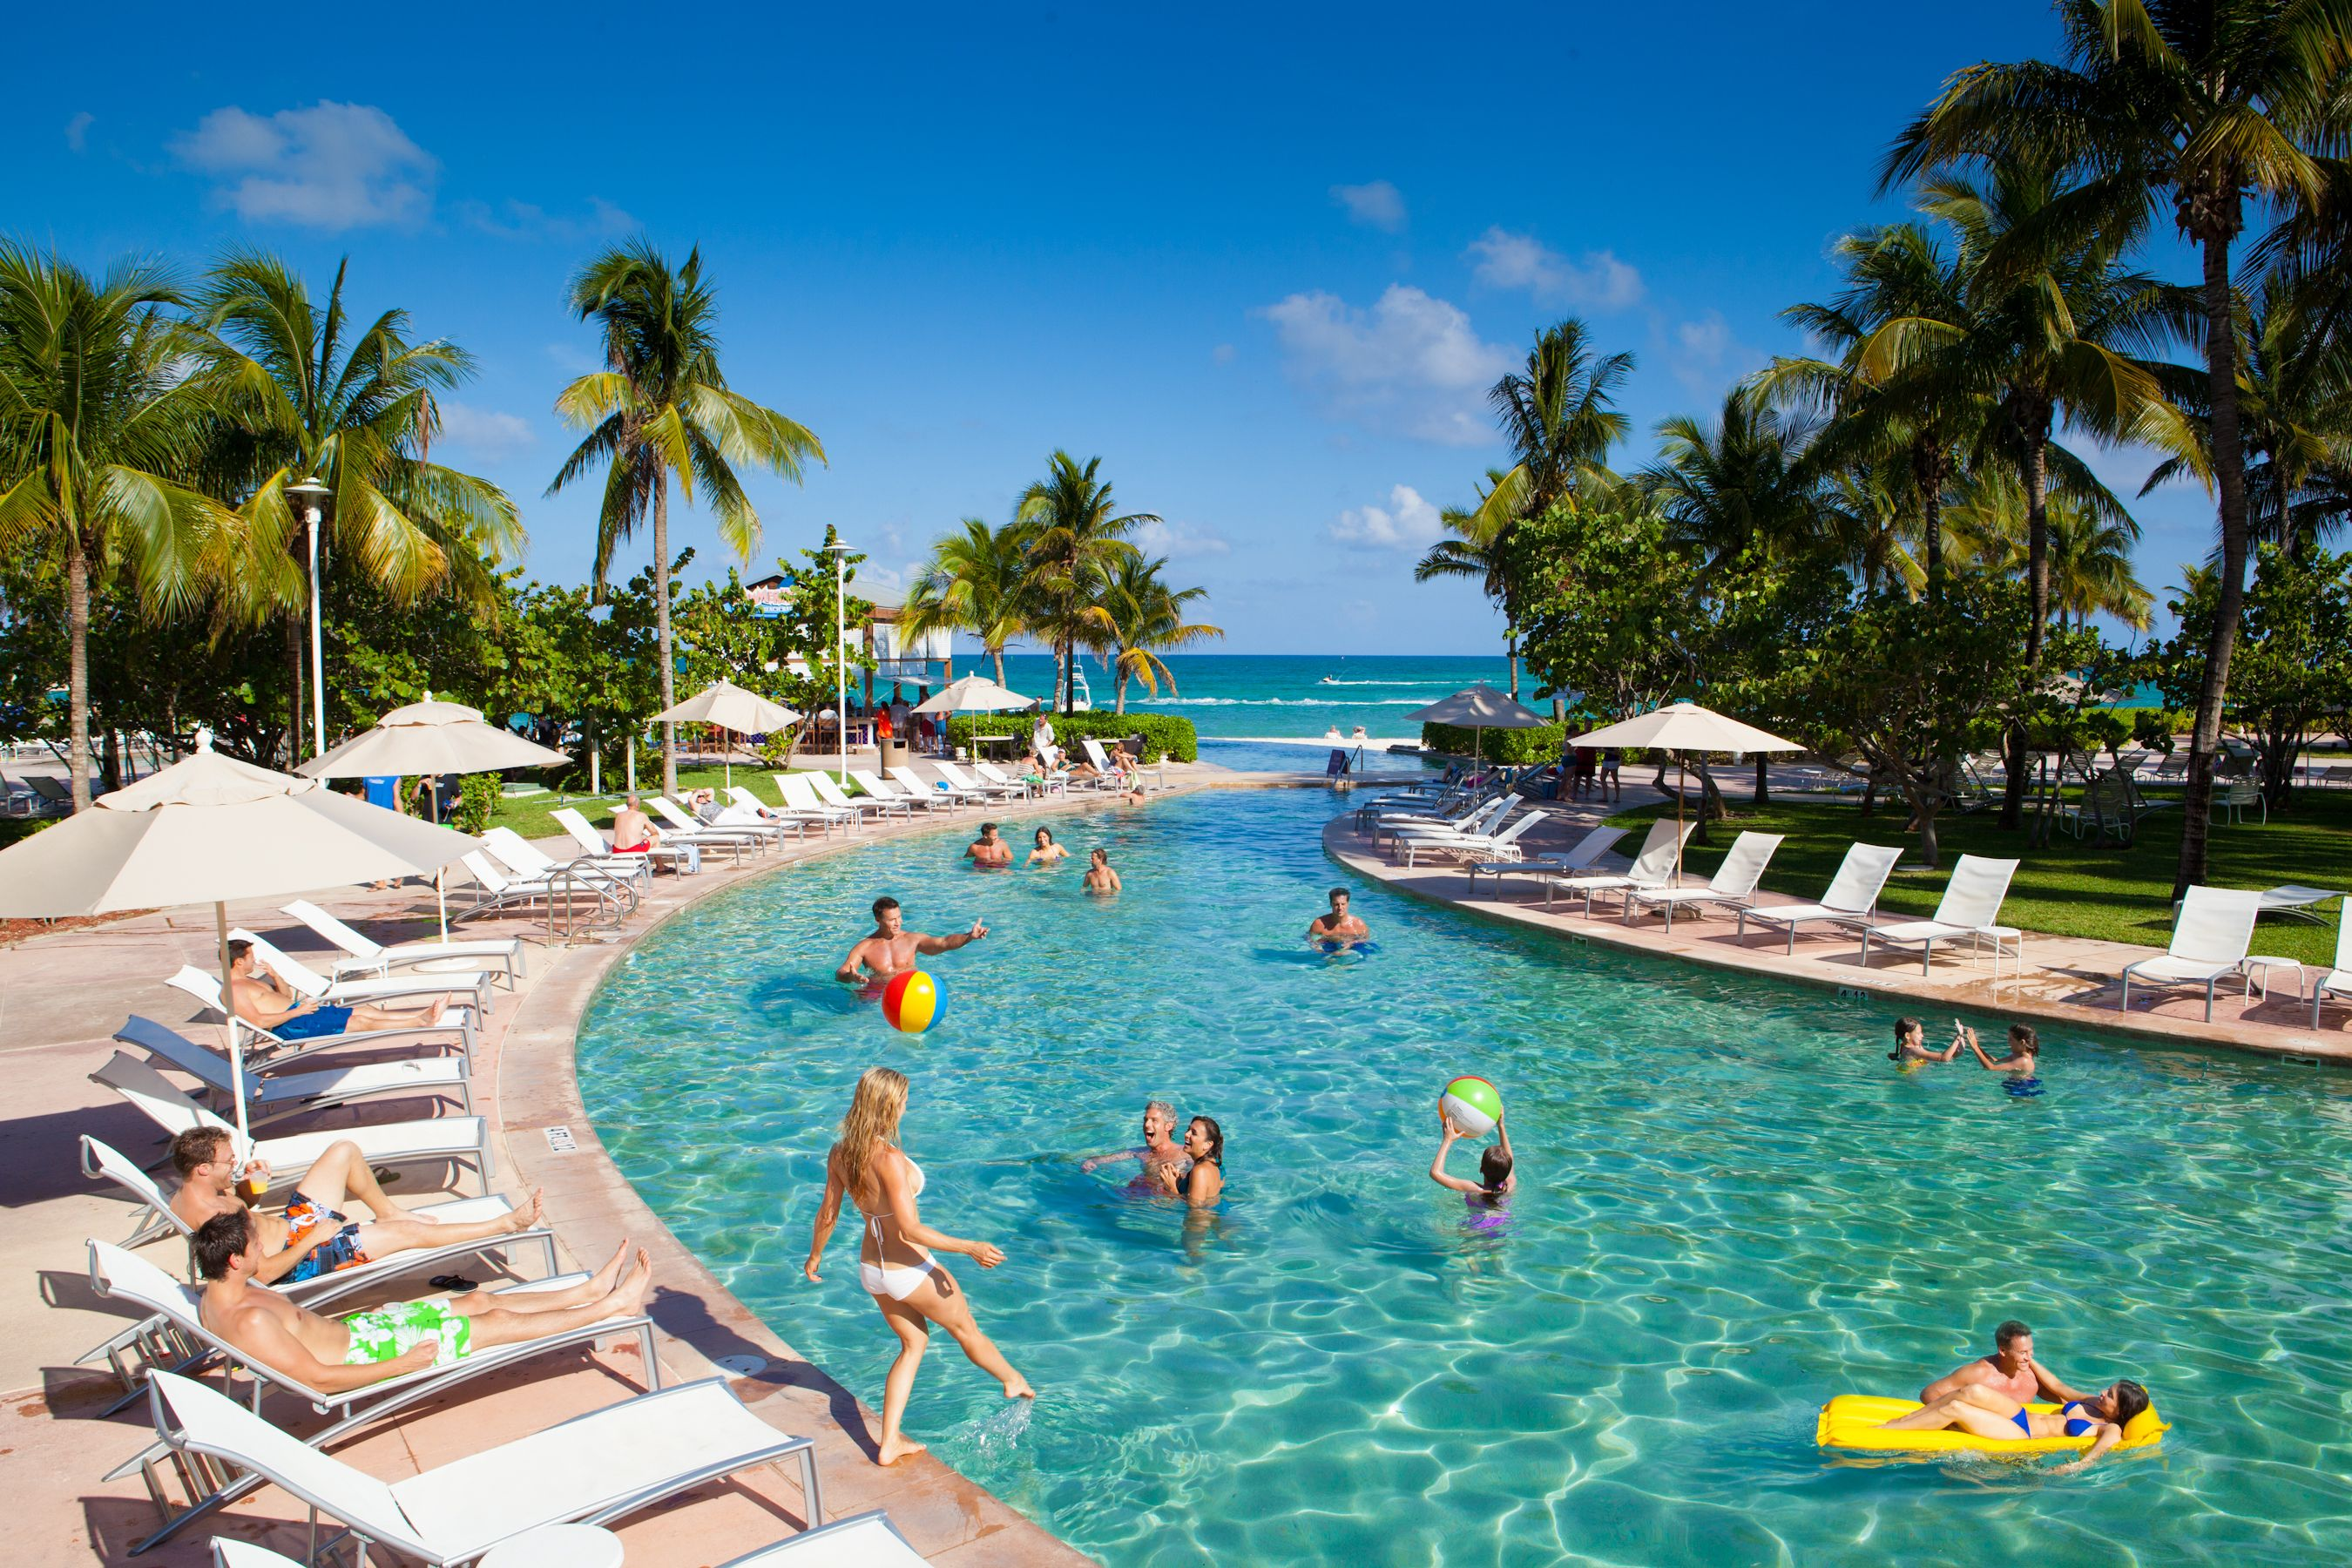 10 of the Best All Inclusive Resorts in the Caribbean and